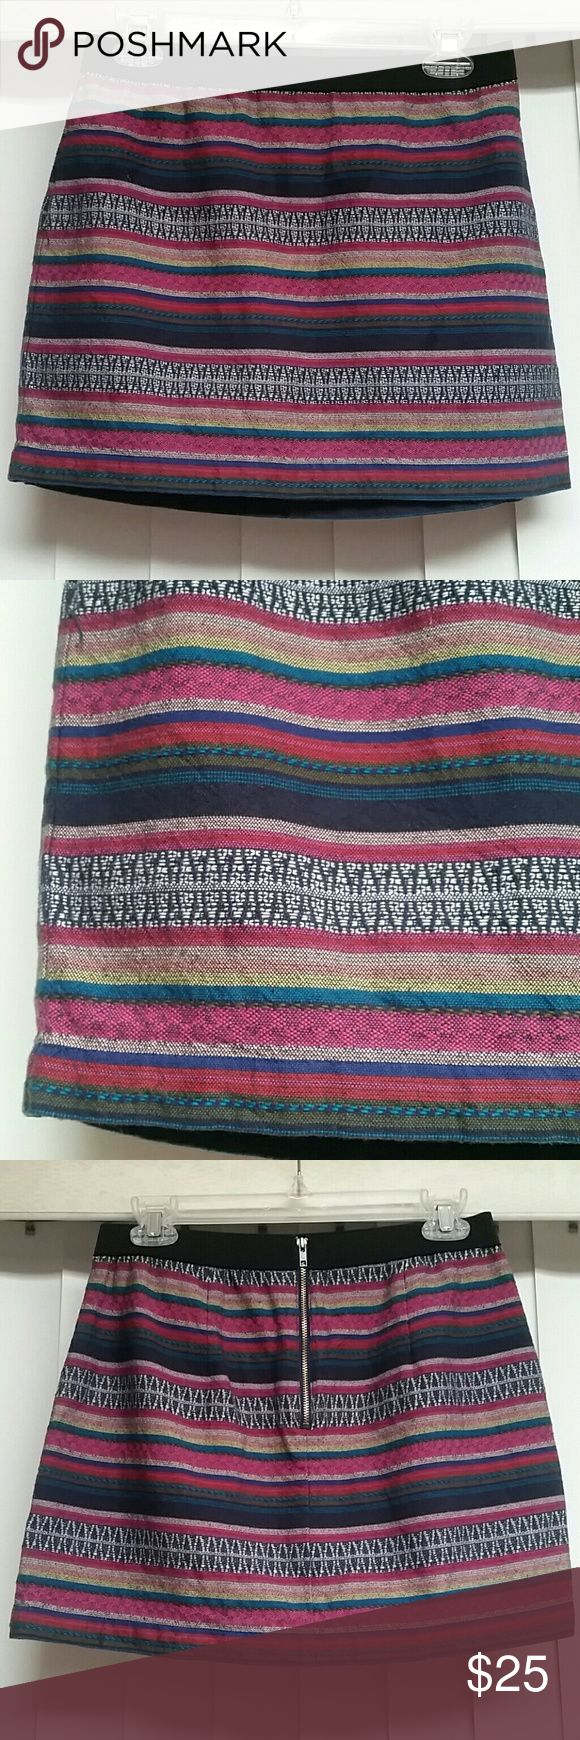 ♡American Eagle southwest tribal embroidered skirt American Eagle Outfitters embroidered mini skirt in a  colorful southwest tribal print design! It is a size 4! =) Worn just a few times! Perfect for Fall layering... Adorable with a cream sweater and boots ♡  Artisan cool. 100% Cotton Soft embroidered cotton. A-line silhouette. Contrast elastic waist. Exposed back zip. Unlined. Machine Wash. $55.00 American Eagle Outfitters Skirts Mini